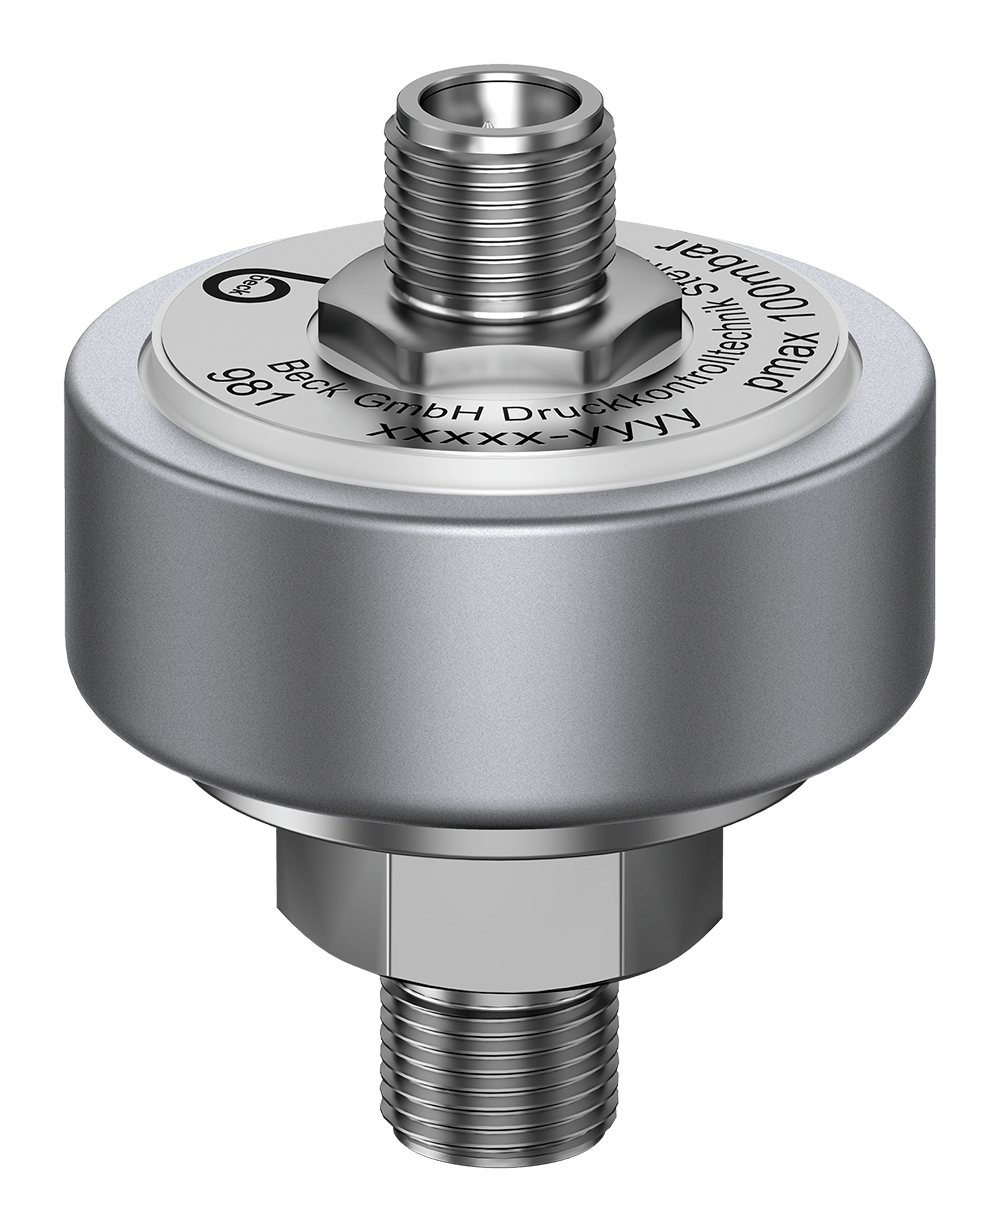 Pressure Transmitter 981 with stainless steel pressure connection